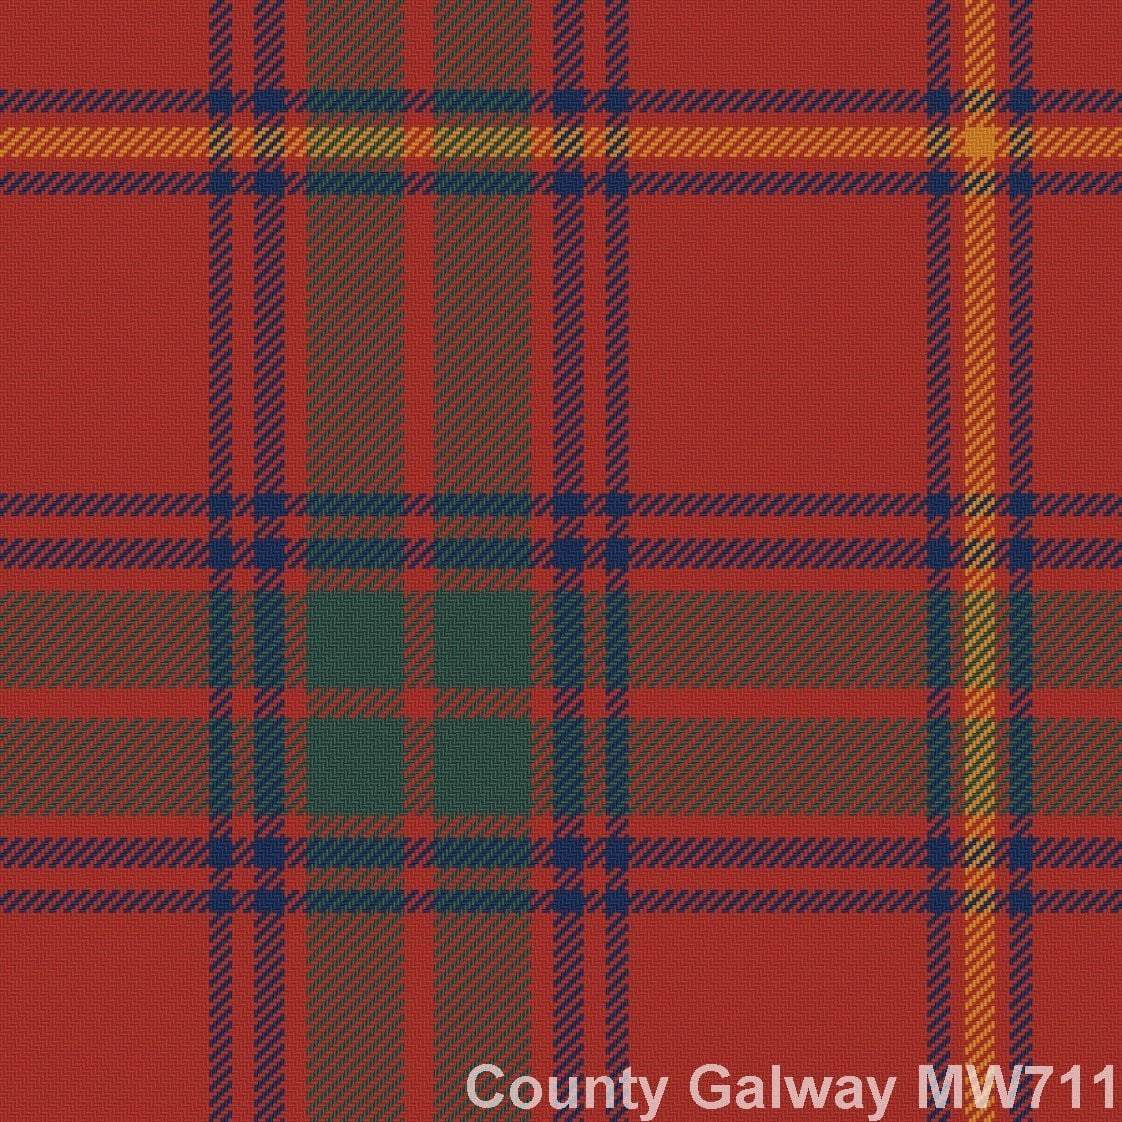 Galway County